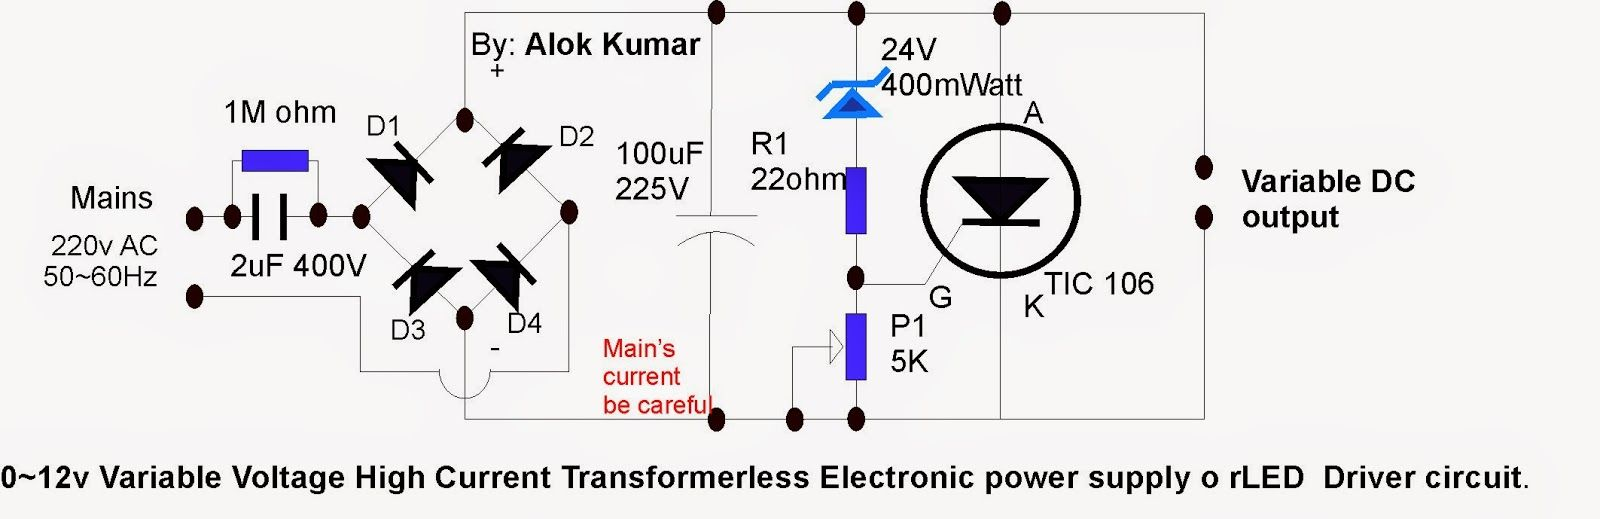 Electronic Circuits Transformerless Power Supply Led Drivers Solar Cell Series Battery Chargers How To Make 0 12v Variable High Current